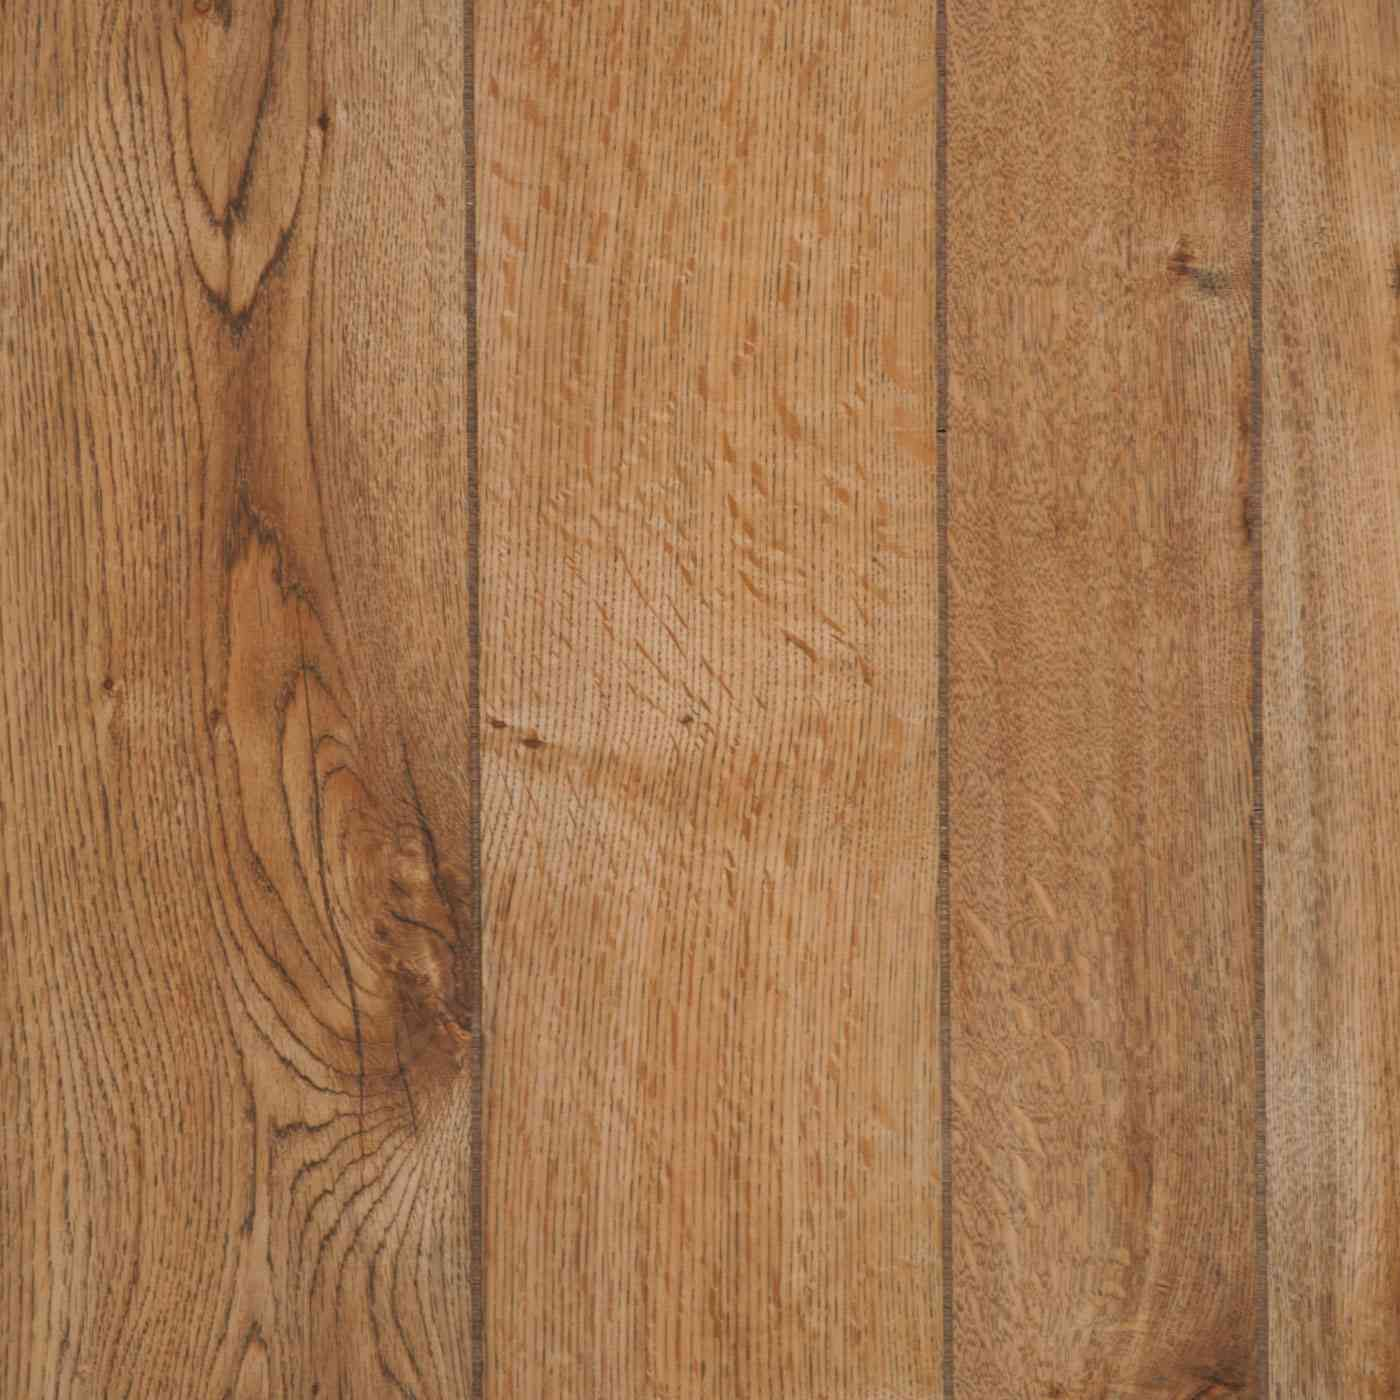 Gala Oak Wall Paneling Random Planks And Grooves In 2020 Plywood Wall Paneling Wood Plank Walls Wall Paneling